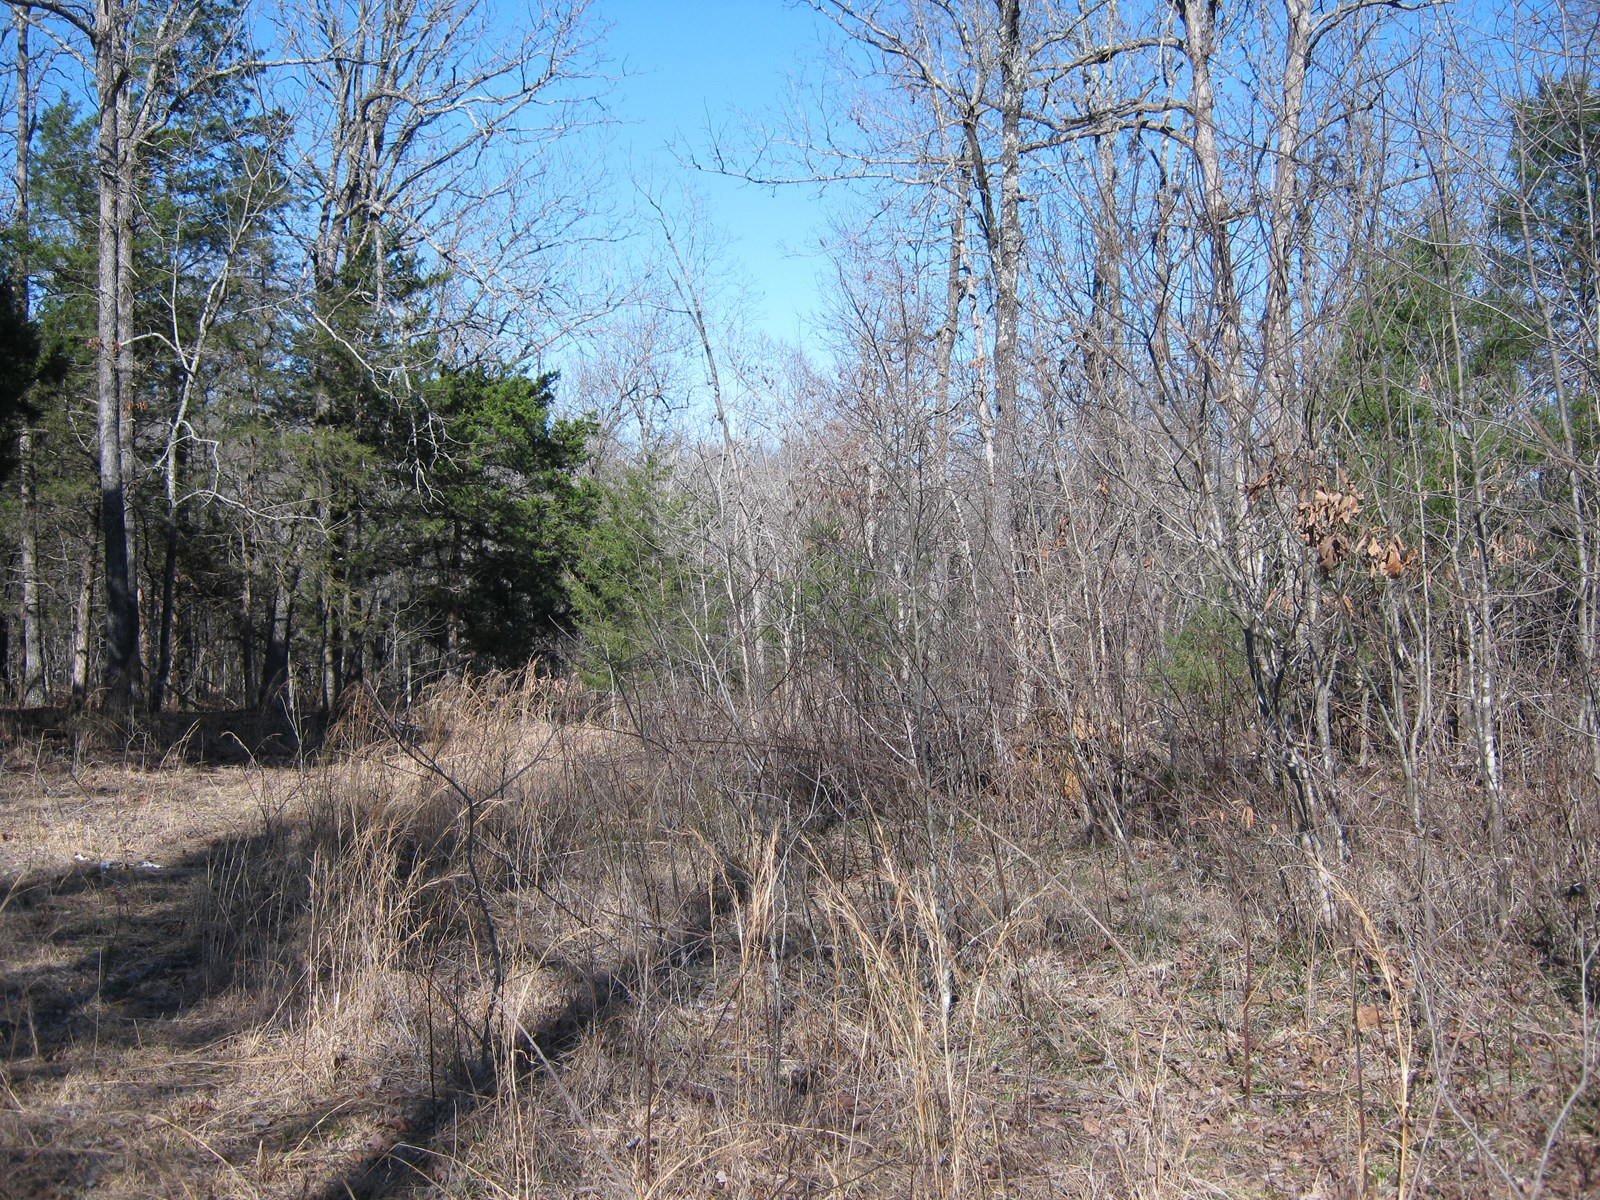 Hunting Property For Sale In The Foothills Of The Ozarks